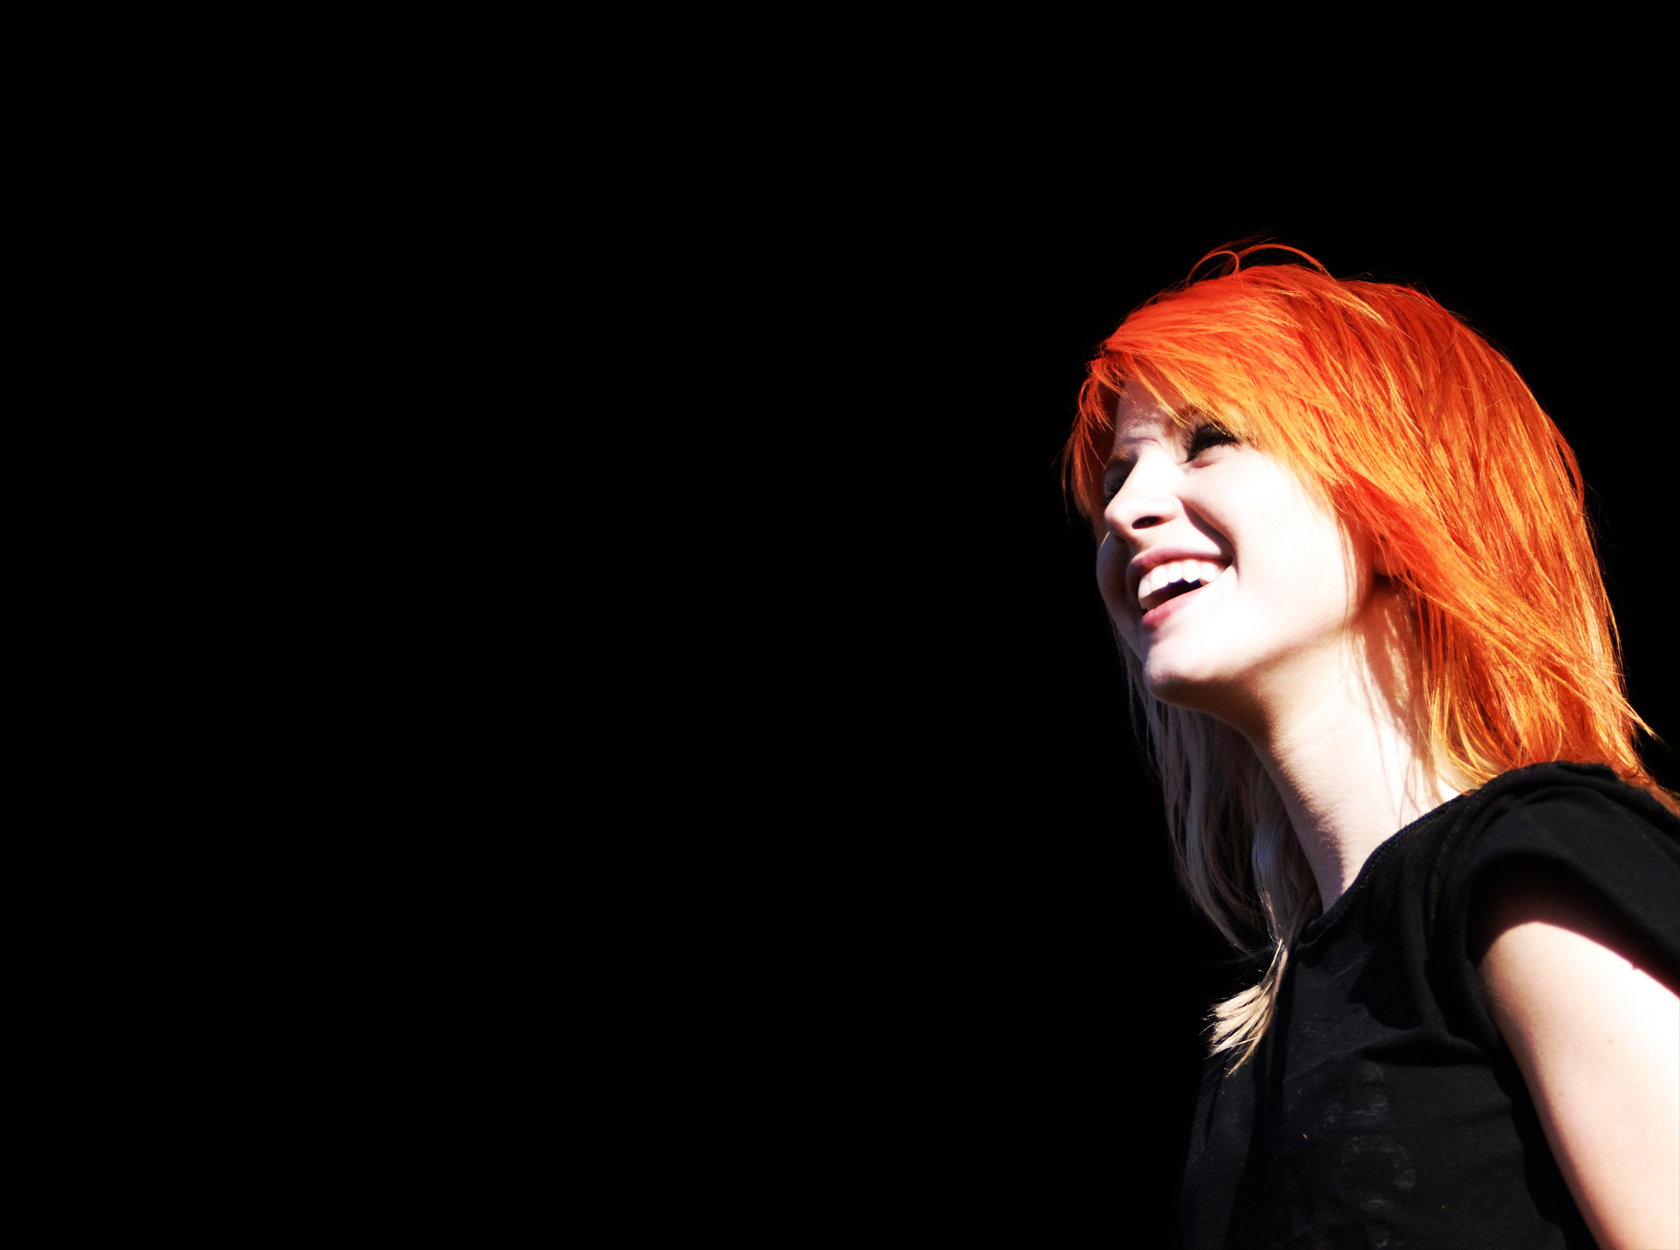 Download Hayley Williams Wallpaper 1680x1250 Wallpoper 1680x1250